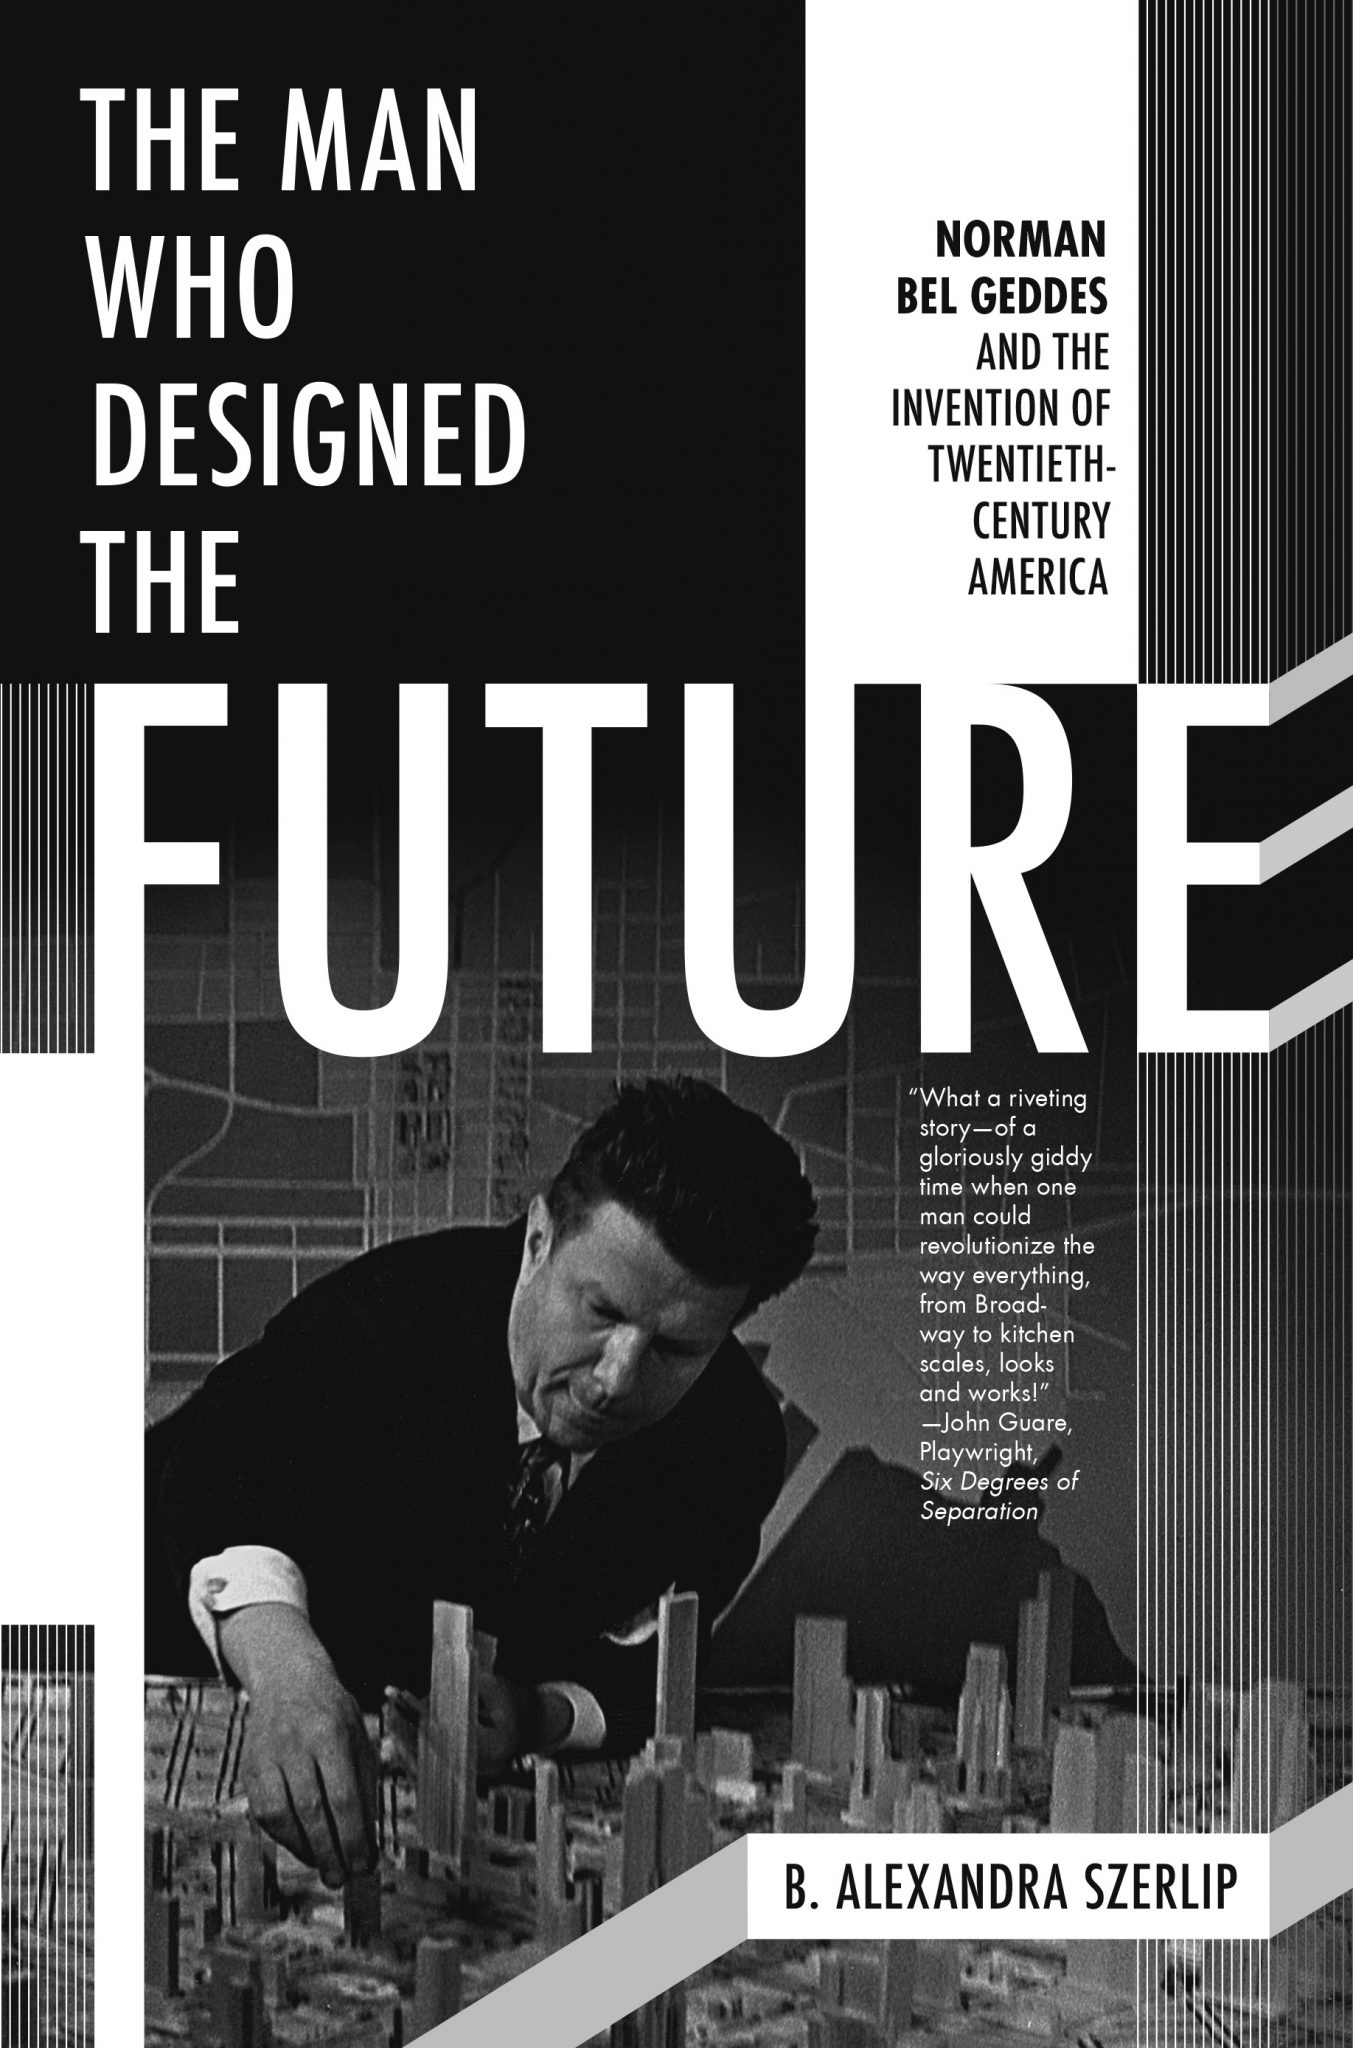 Norman Bel Geddes and the invention of 20th century America | Design ...